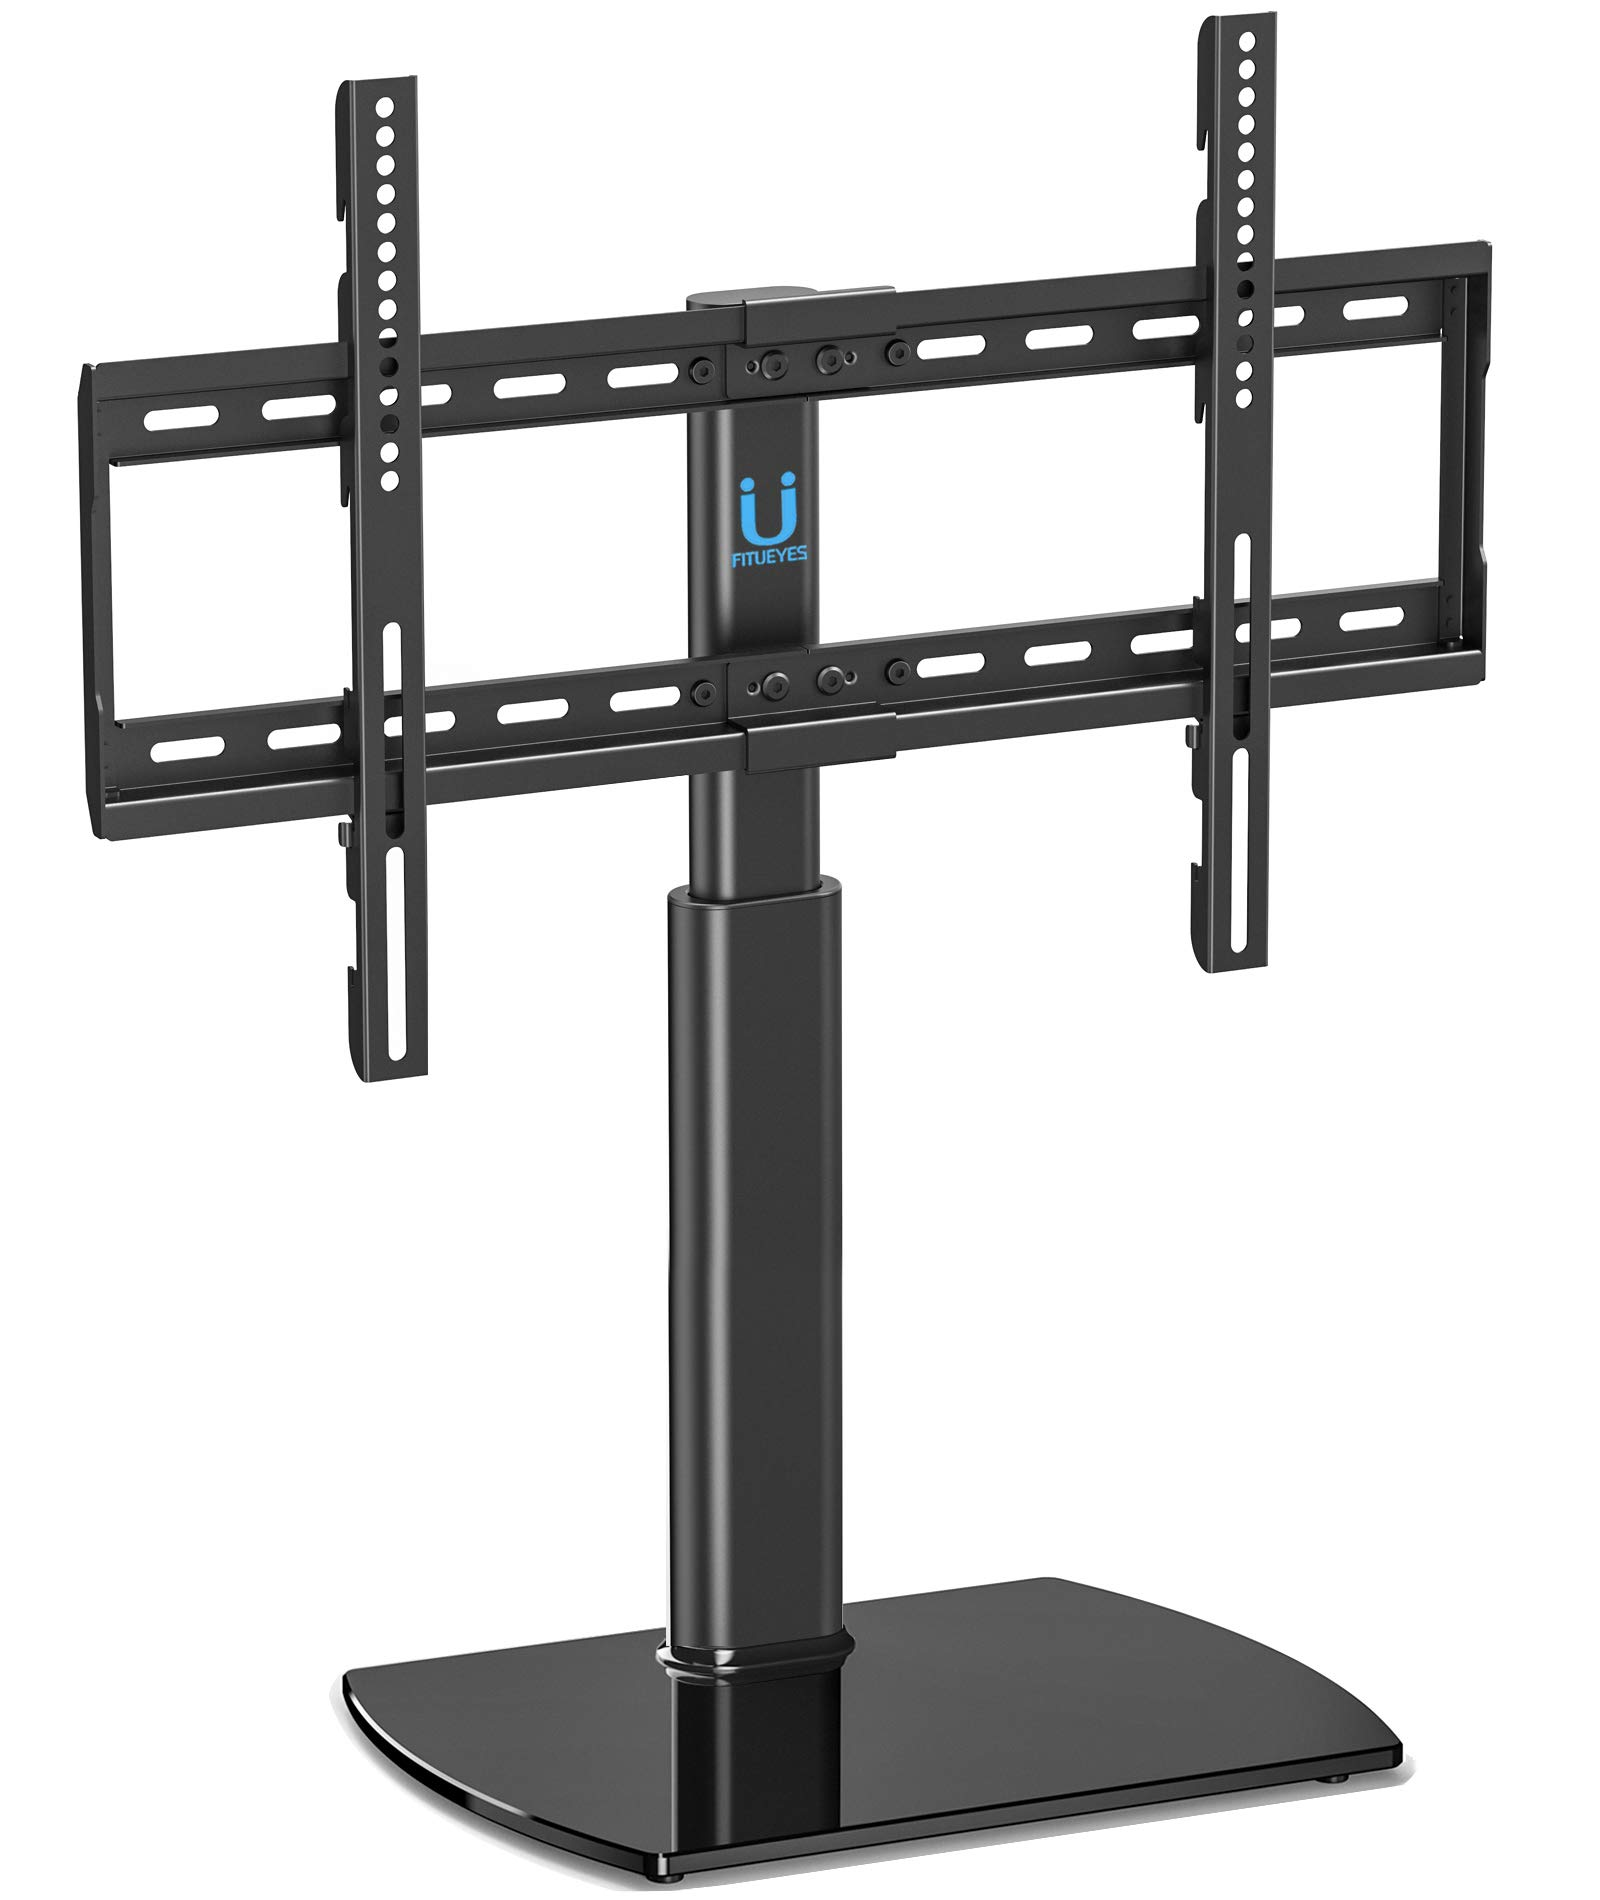 Fitueyes Universal TV Stand/Base Swivel Tabletop TV Stand with Mount for 32 to 65 inch Flat Screen TV 80 Degree Swivel, 3 Level Height Adjustable,Tempered Glass Base,Holds up to110 lbs Screens by FITUEYES